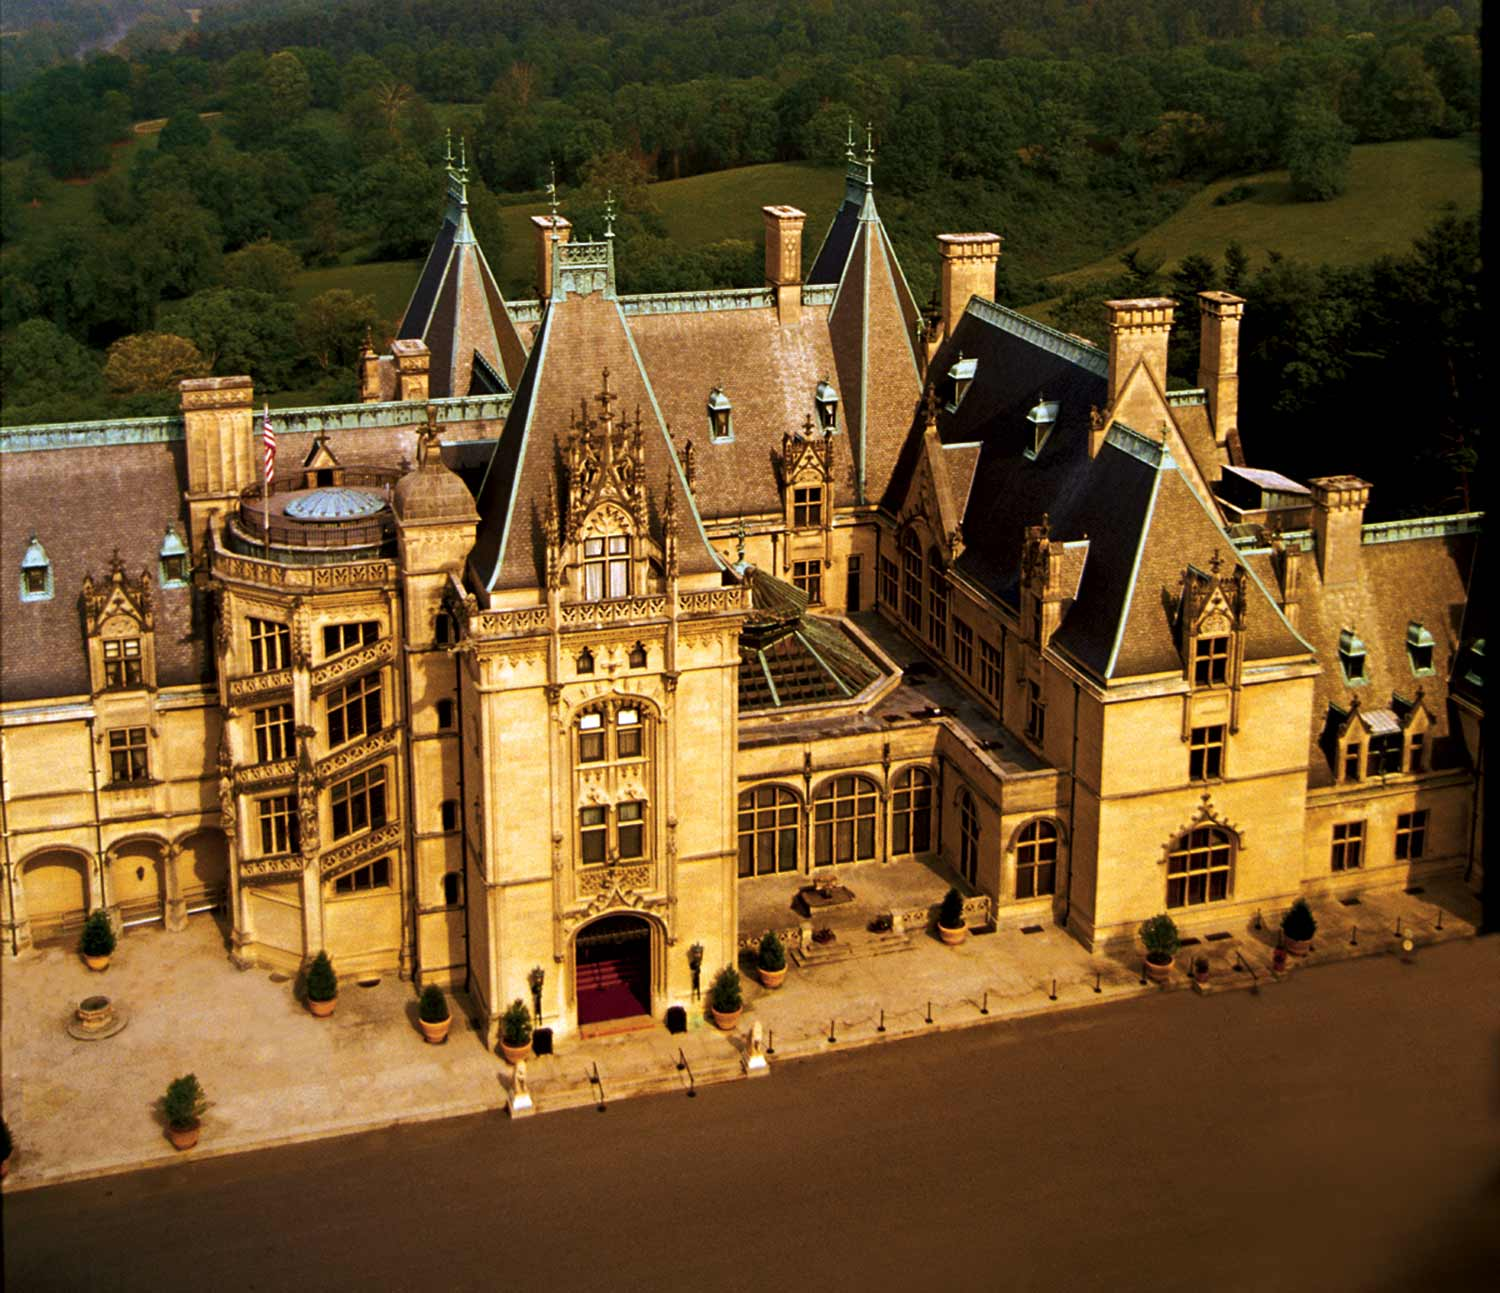 An aerial view of the extensive and extravagant Biltmore Mansion